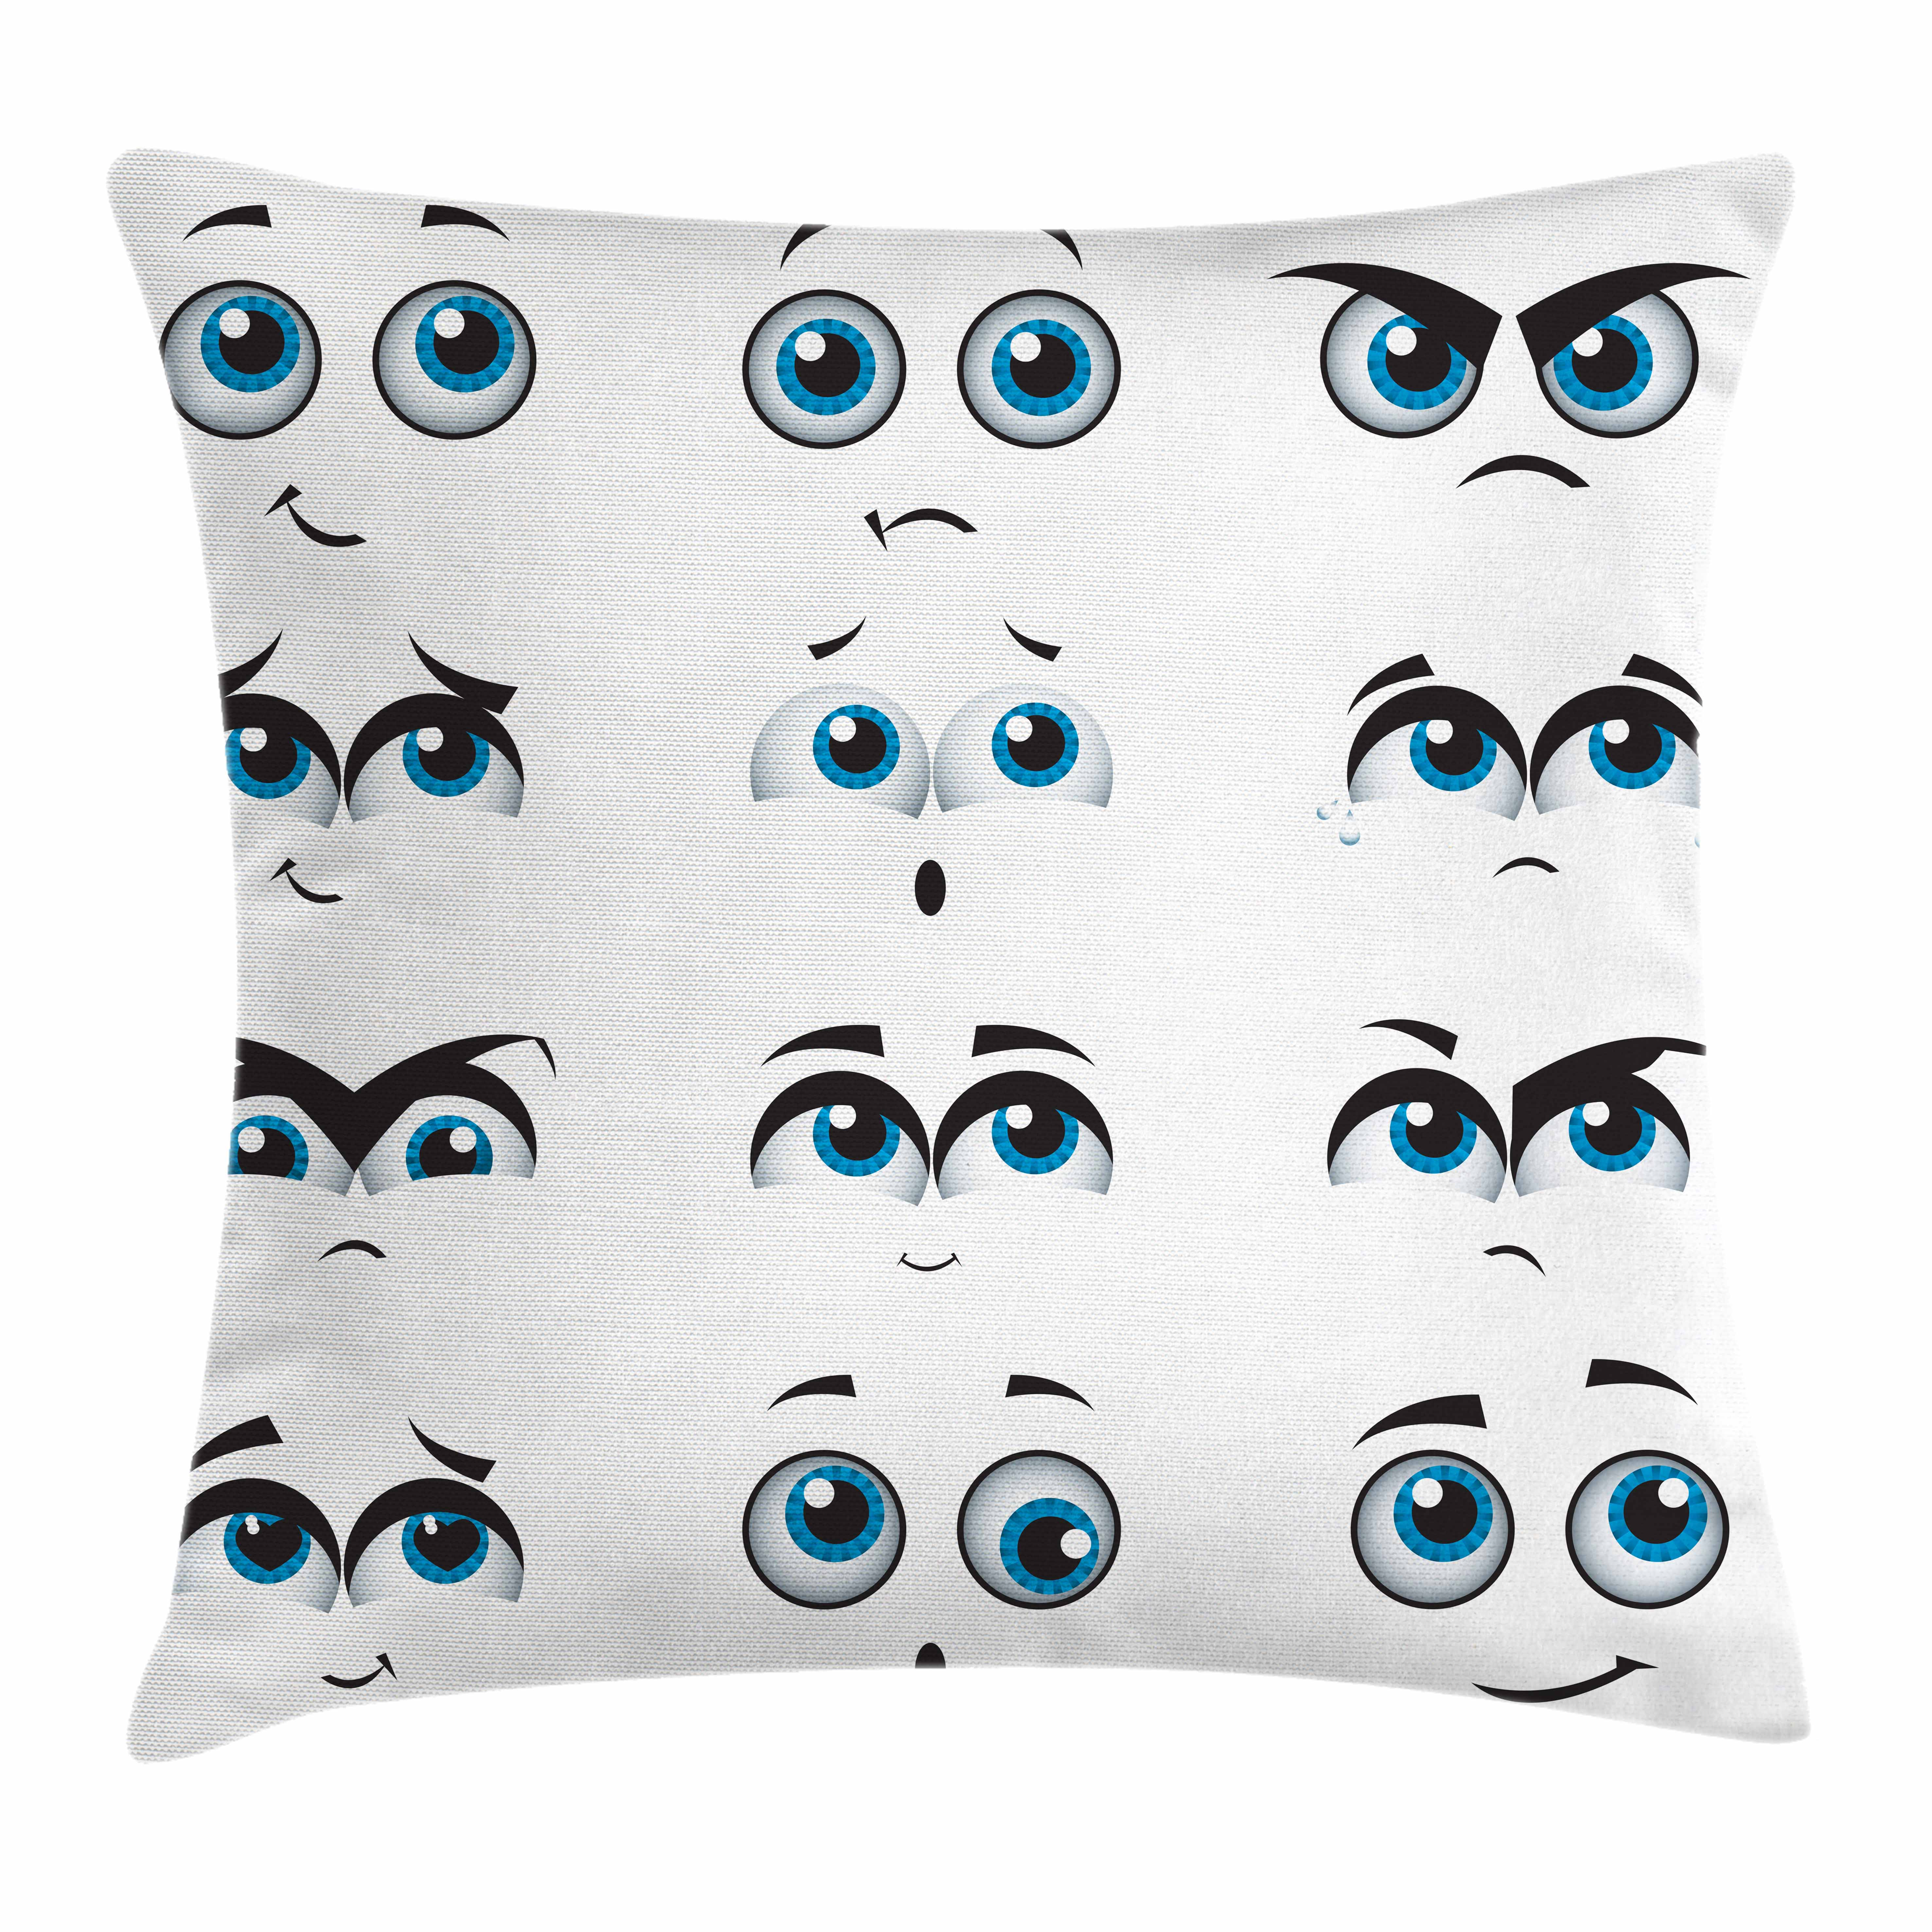 Eye Throw Pillow Cushion Cover, Silly Comic Faces with Various Expressions Humorous Design for Kids and Children, Decorative Square Accent Pillow Case, 16 X 16 Inches, Blue Black White, by Ambesonne